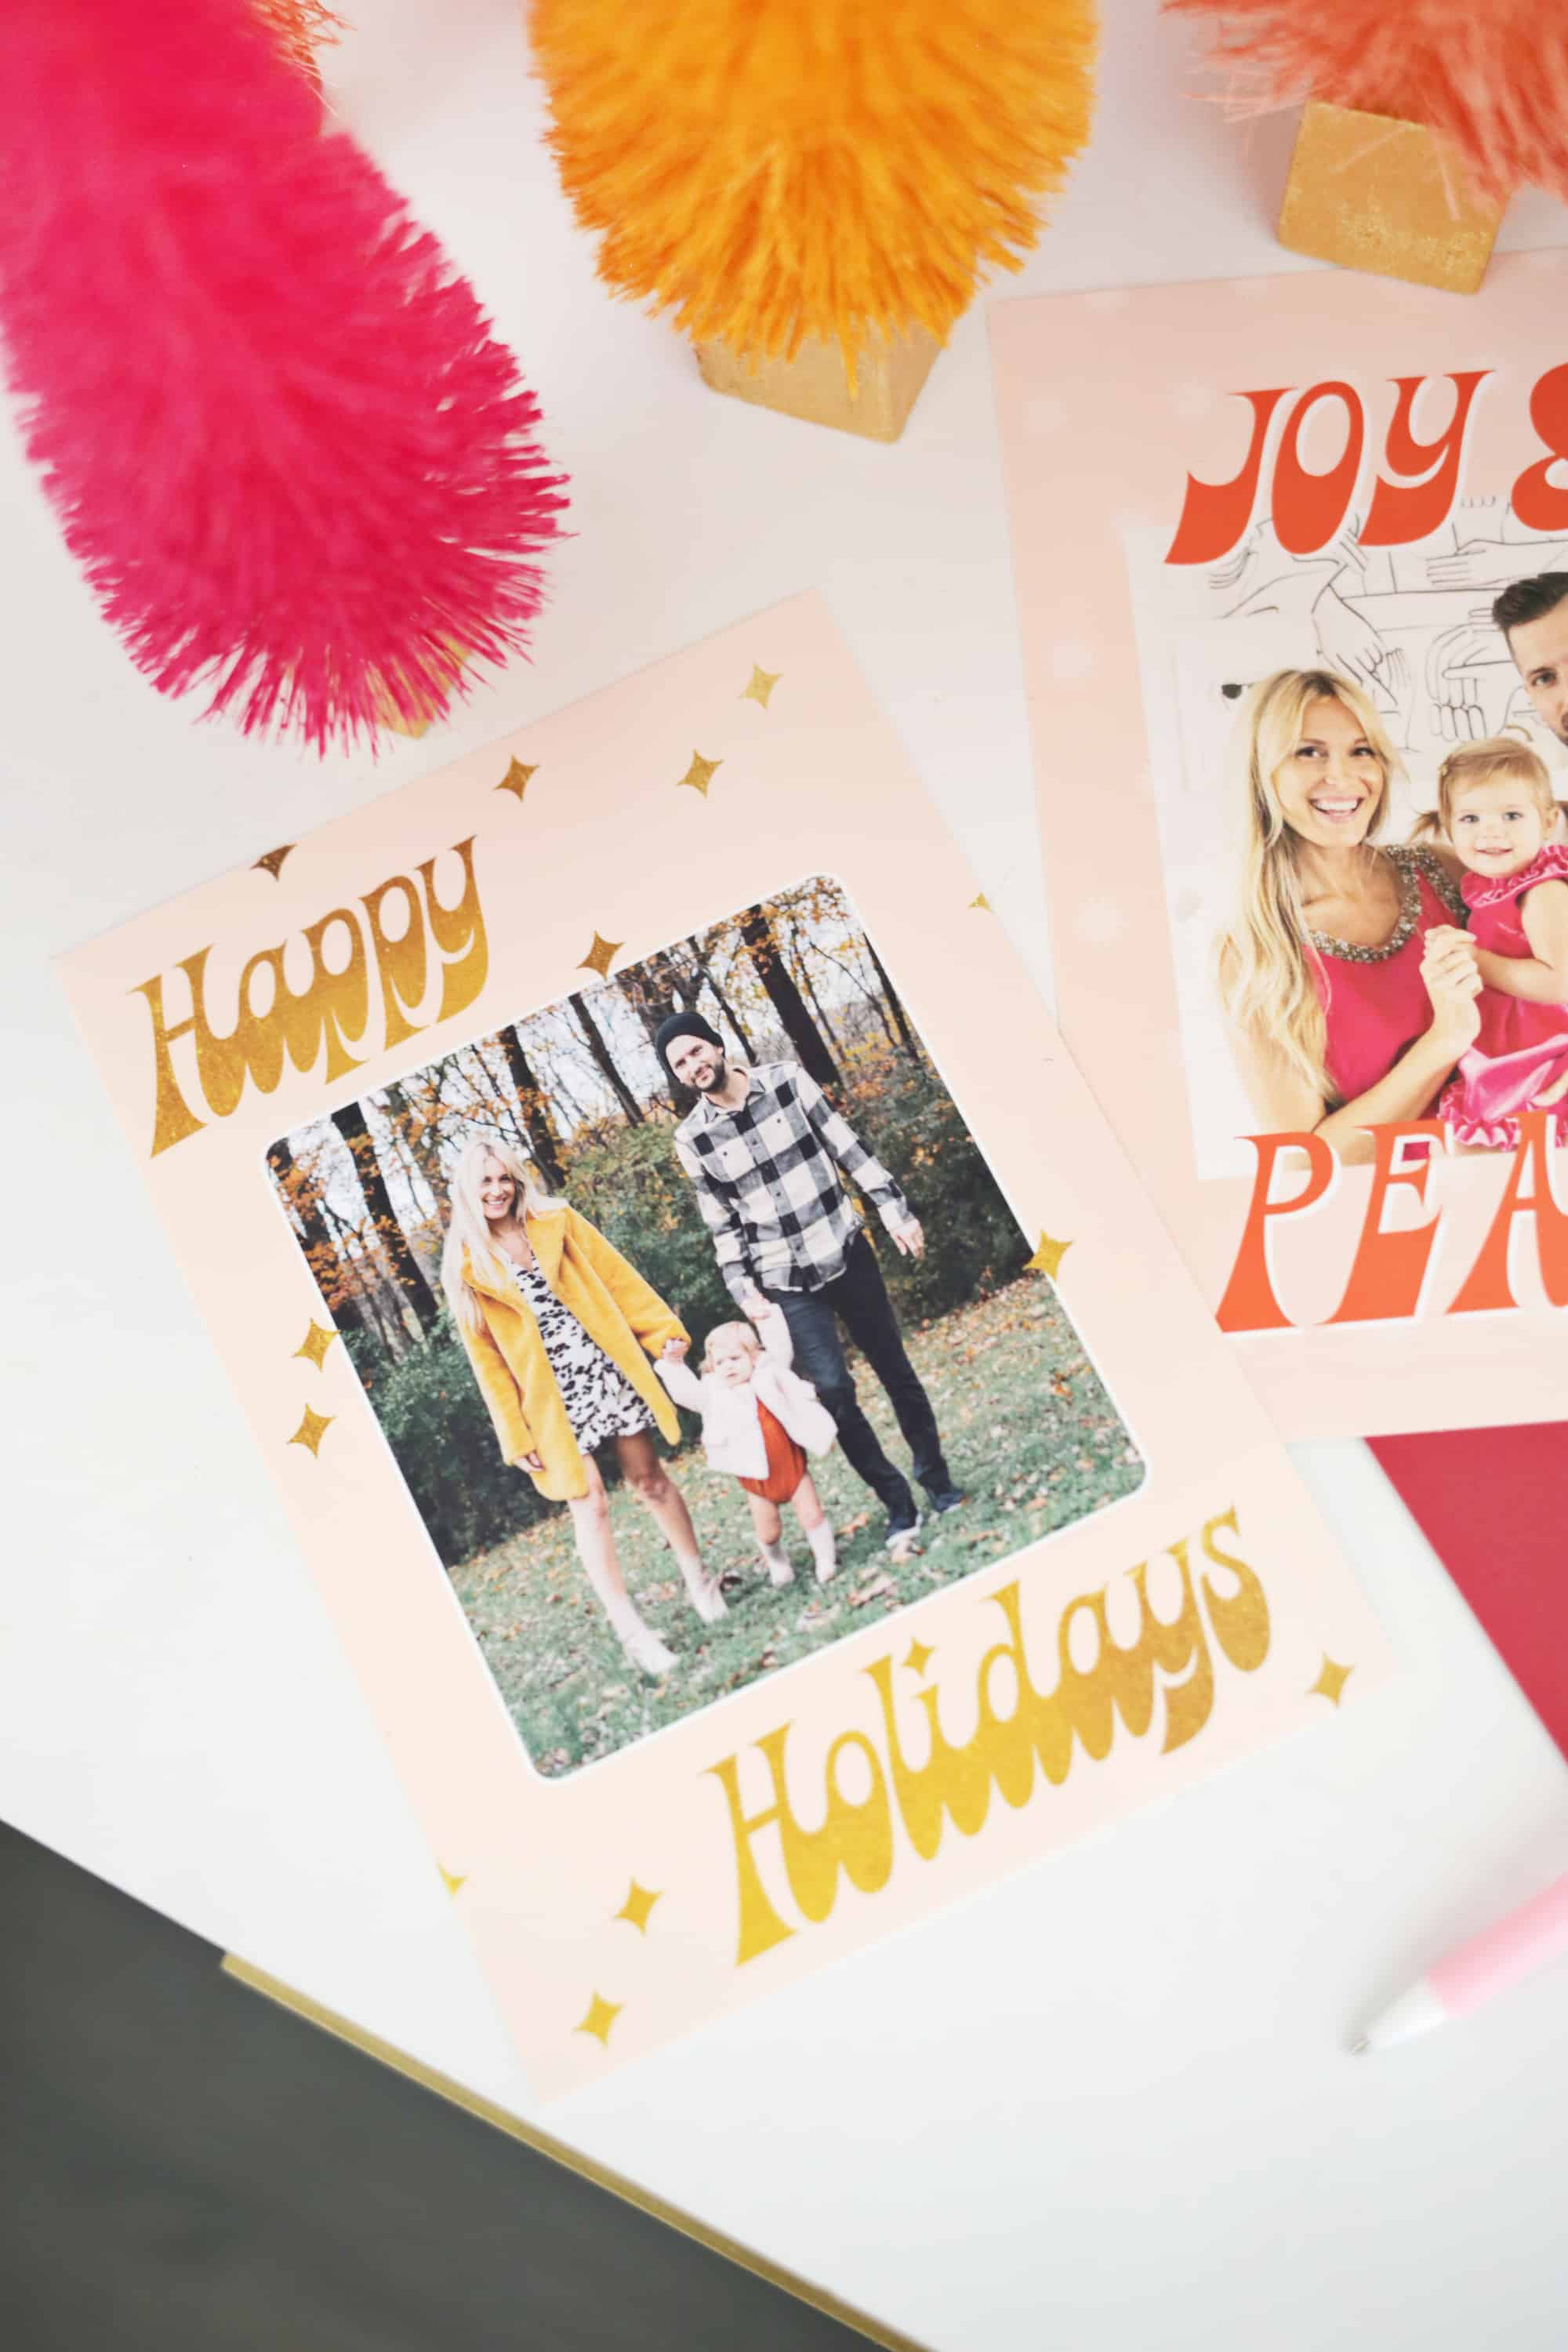 You Can Either Print All Your Cards With One Design Or Several To Mix Up The Variety Send Out Family And Friends